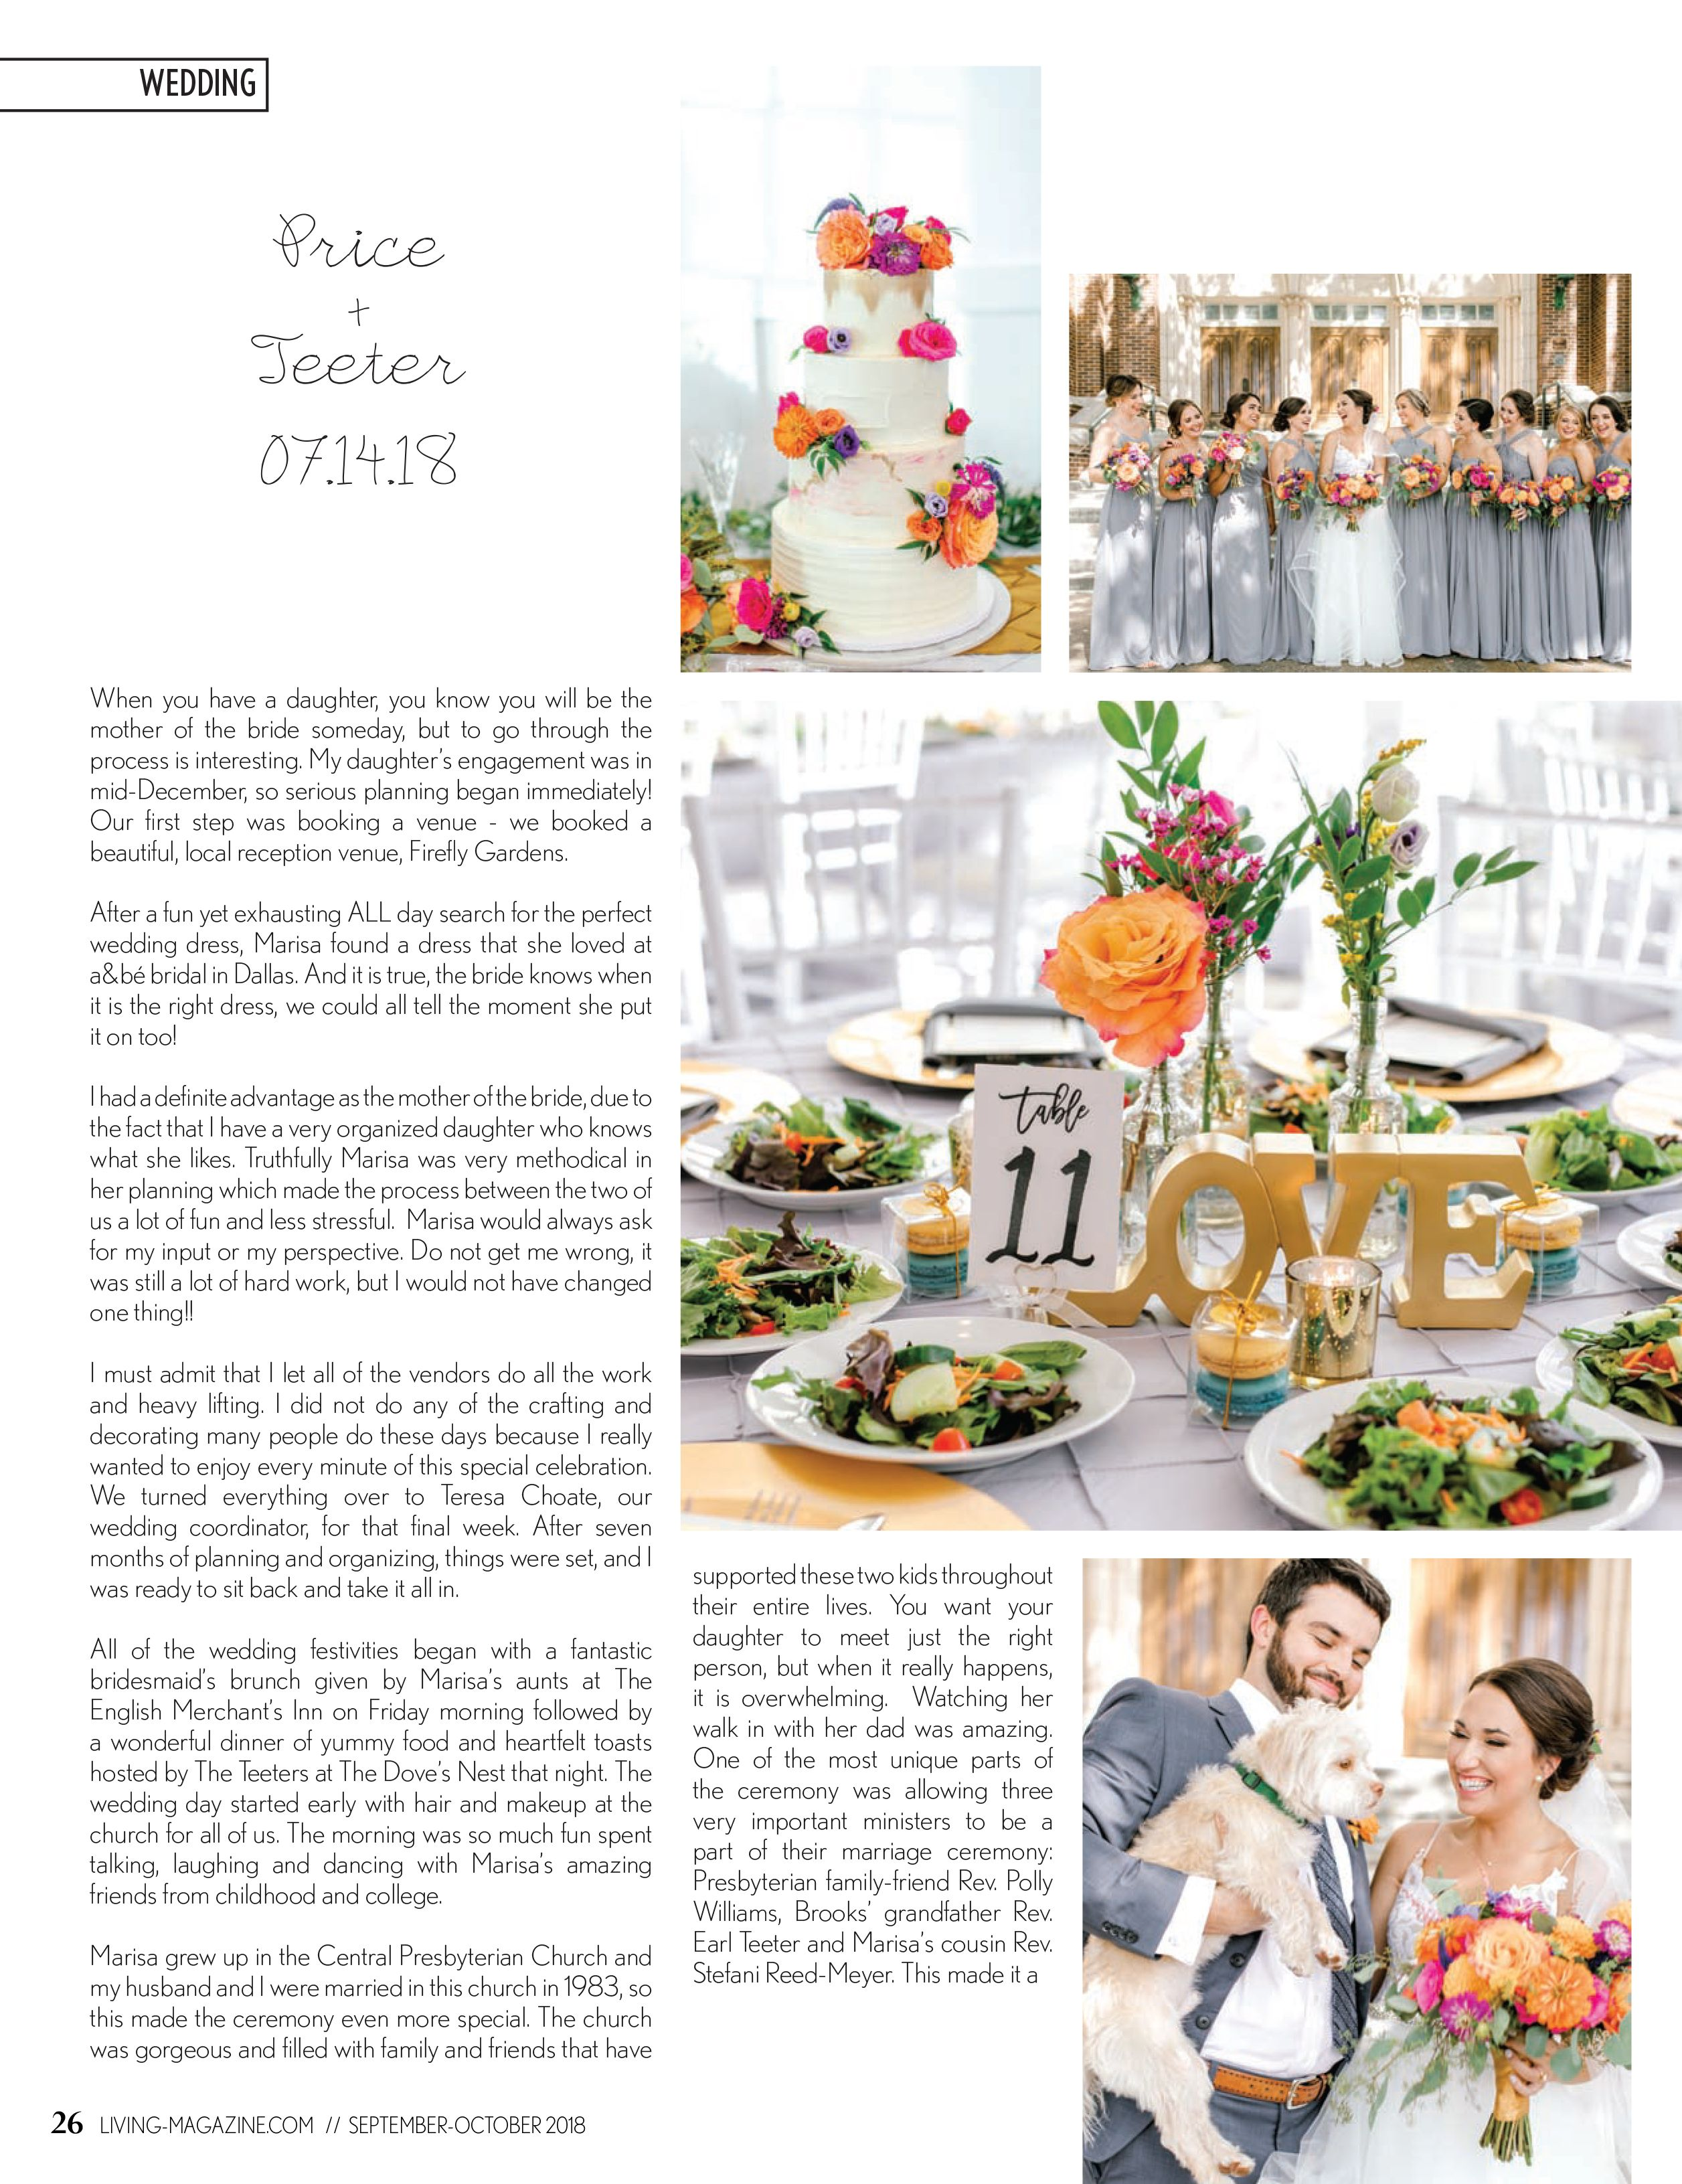 Wedding decorations at church november 2018 September  Ellis County Living Magazine  The Wedding Issue